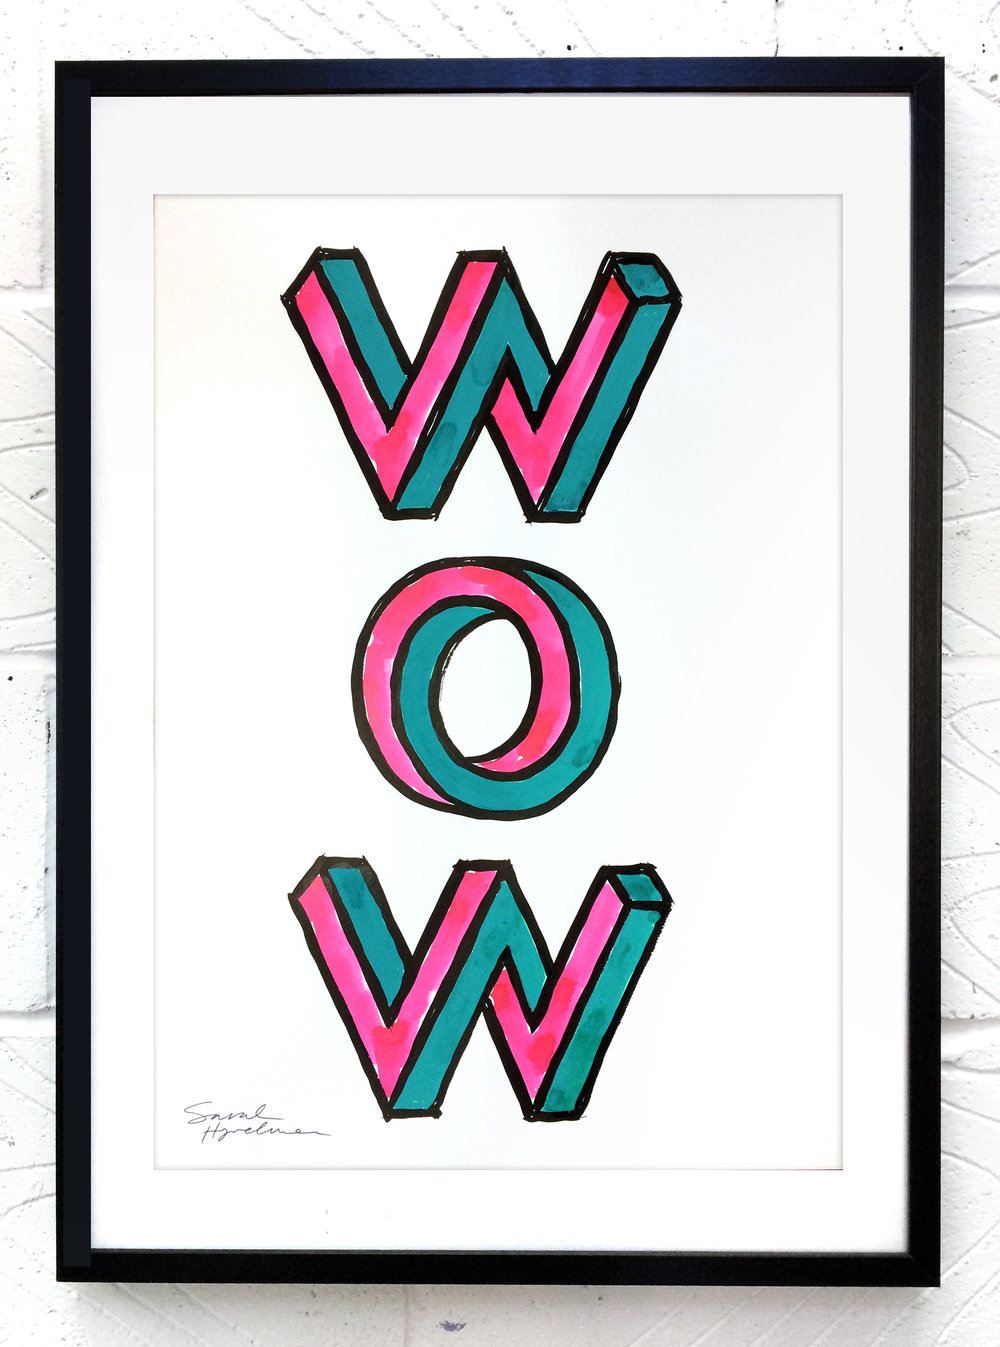 Wow  painting by Sarah Hyndman Ink and gouache, £120  Dimensions 420 x 590mm, unframed  Find out more / buy    ** The poster shop will be closed from 11th to 18th January, last orders by midnight GMT on Thursday 10th January **